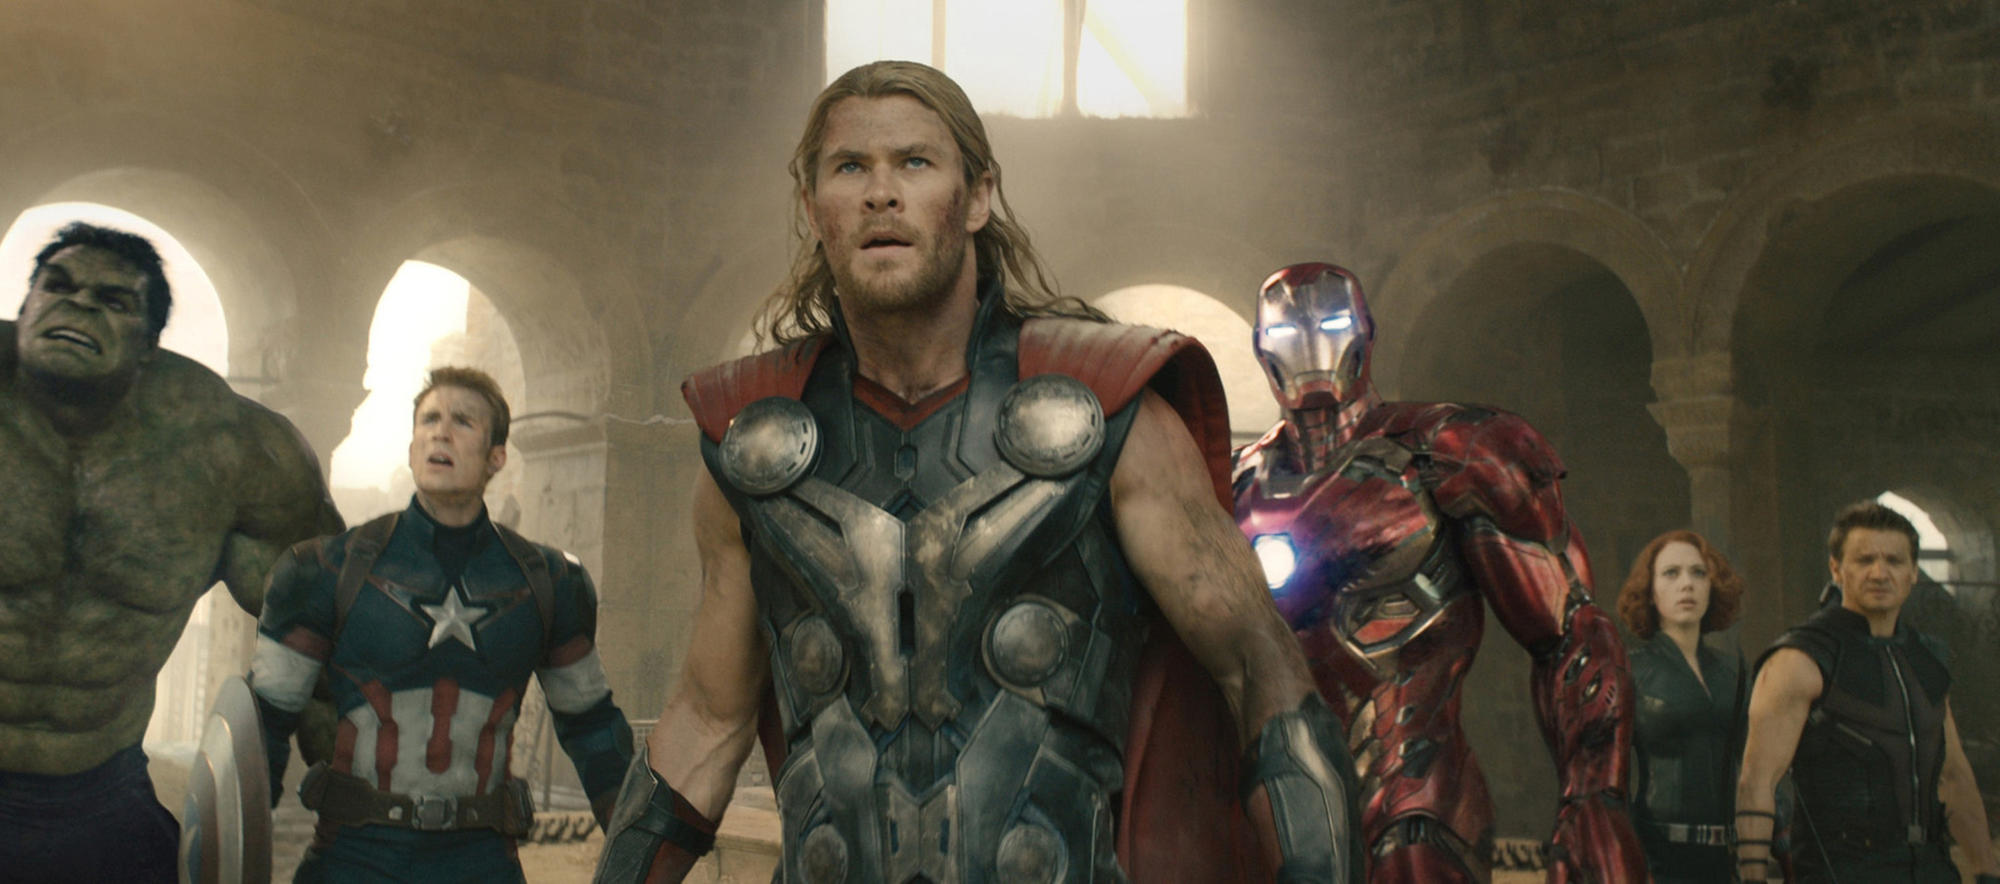 'Avengers: Age of Ultron'